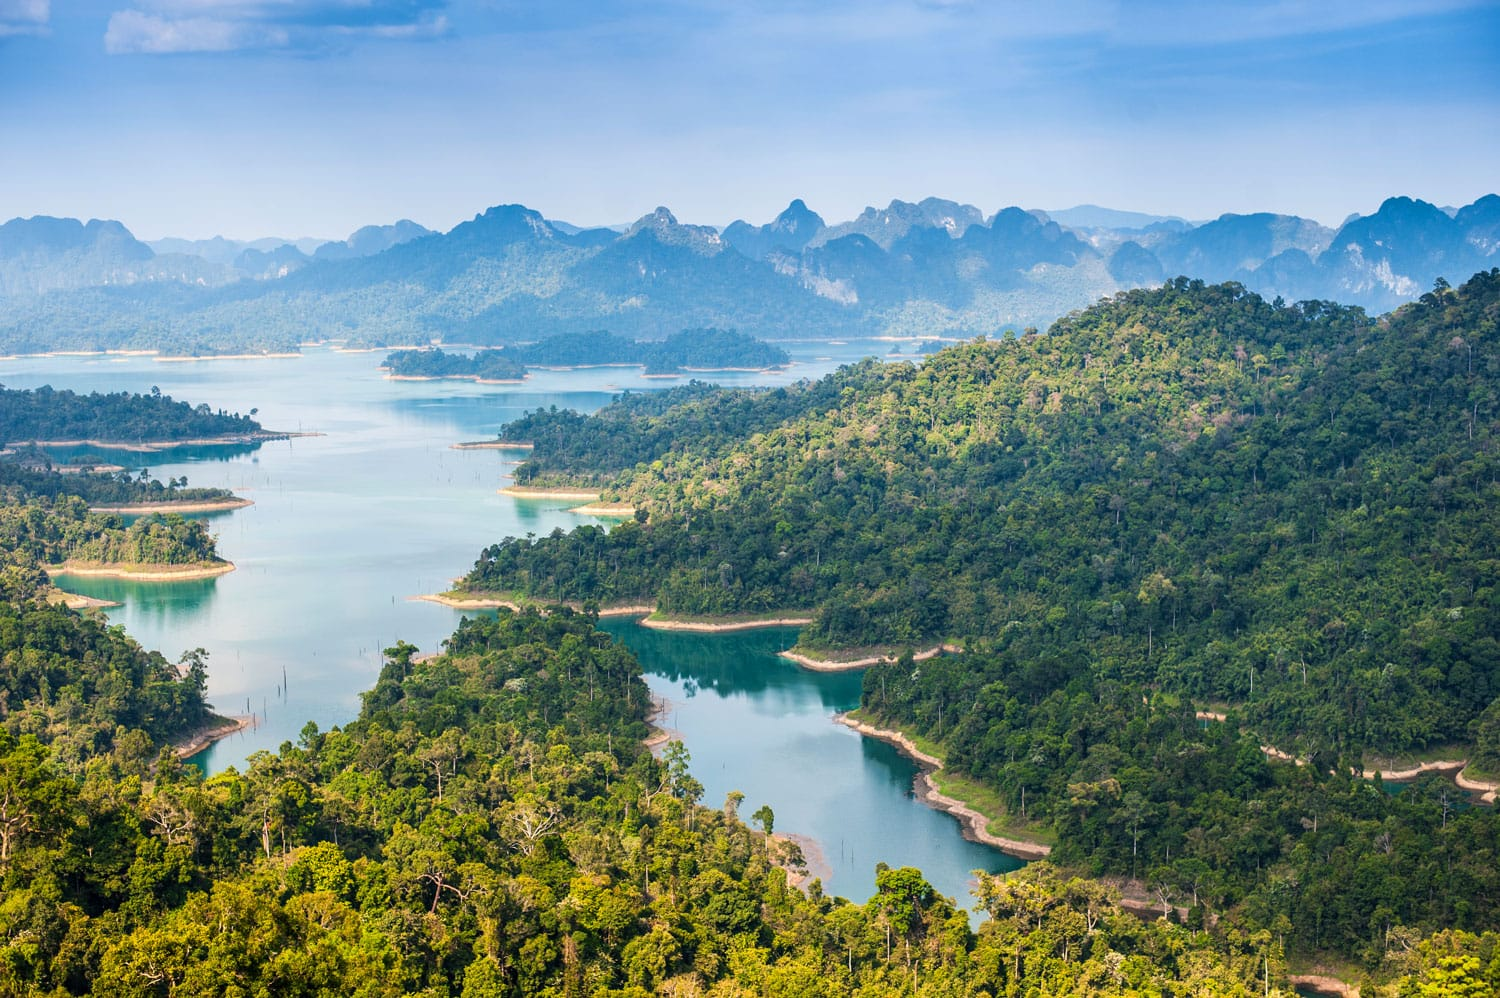 Birdeye view of Ratchaprapha dam Khao sok national park at suratthani,Thailand